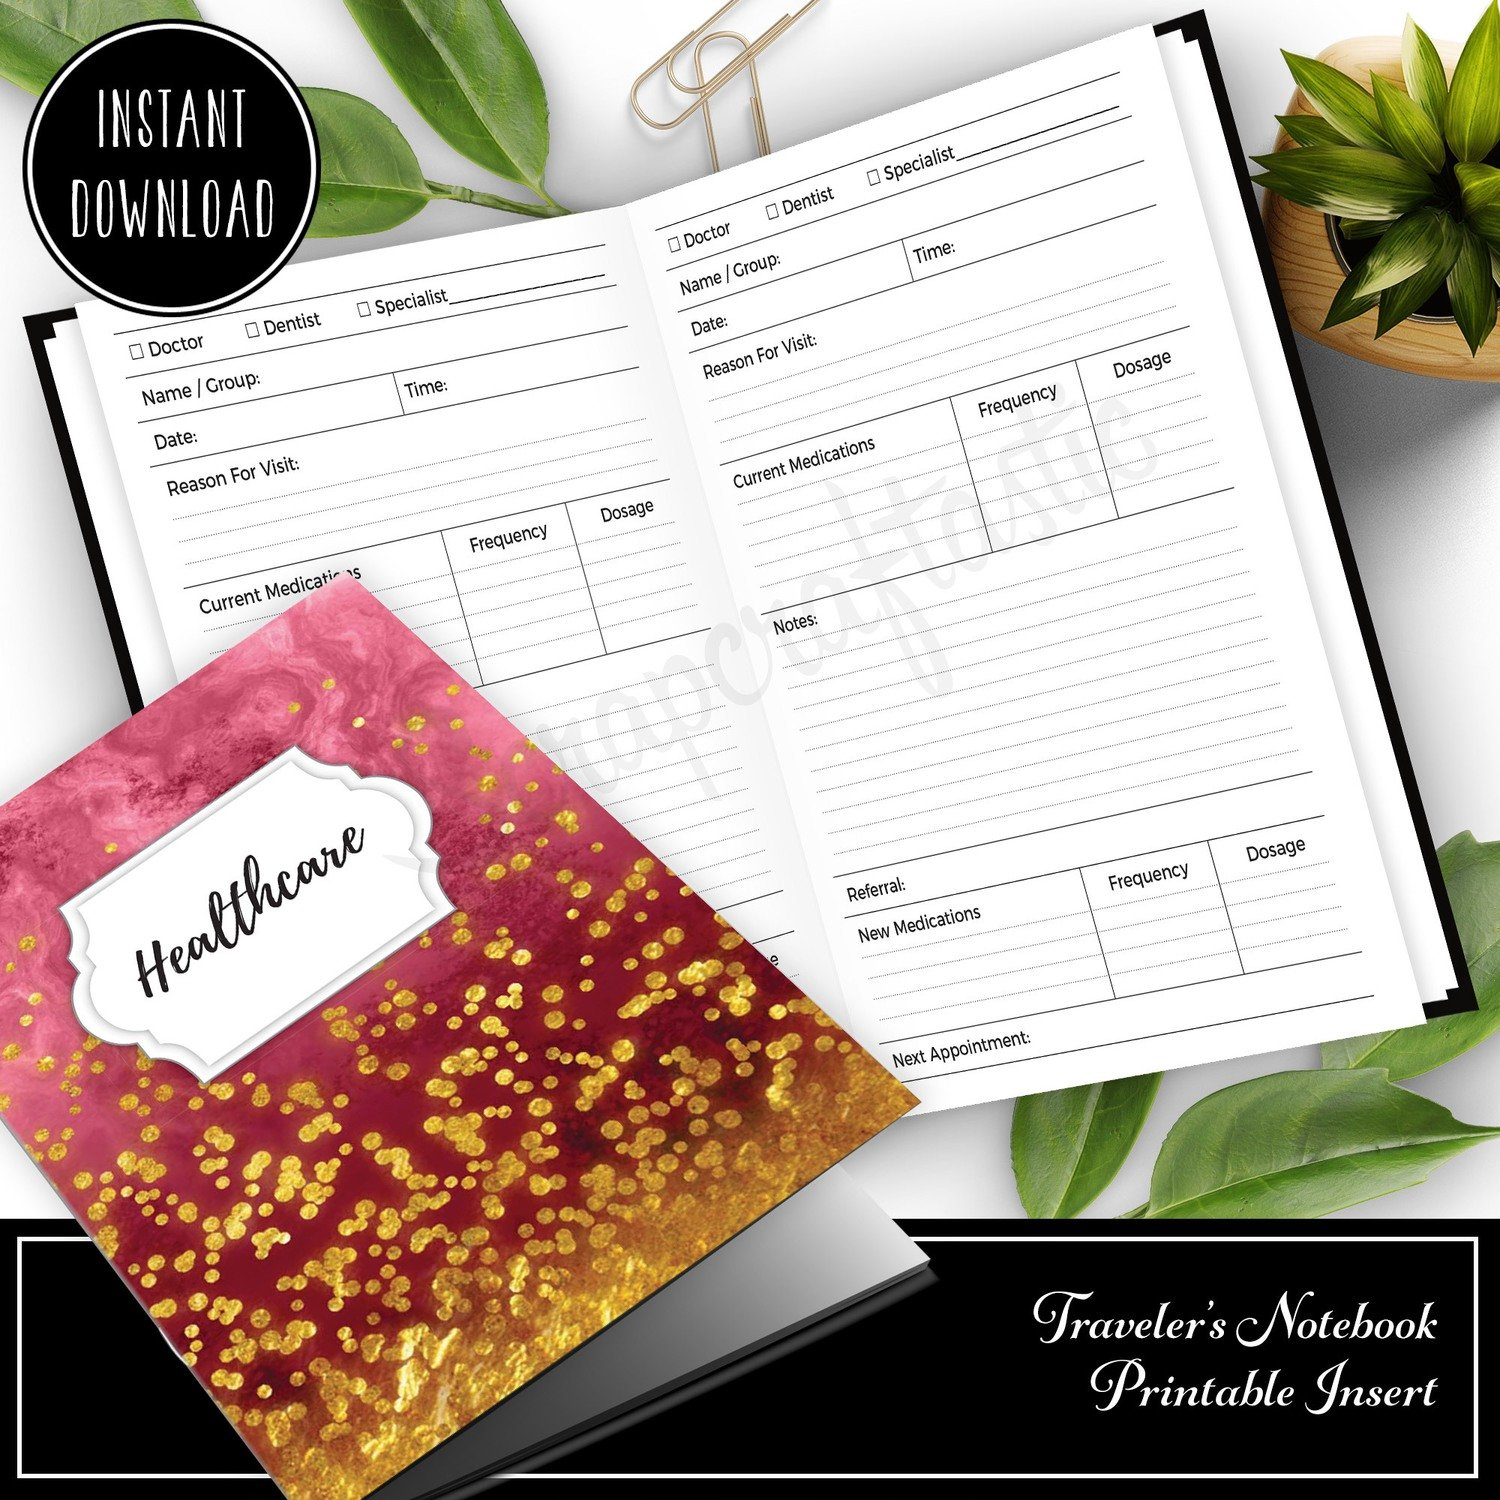 STANDARD TN - Healthcare Visit Log Traveler's Notebook Printable Insert